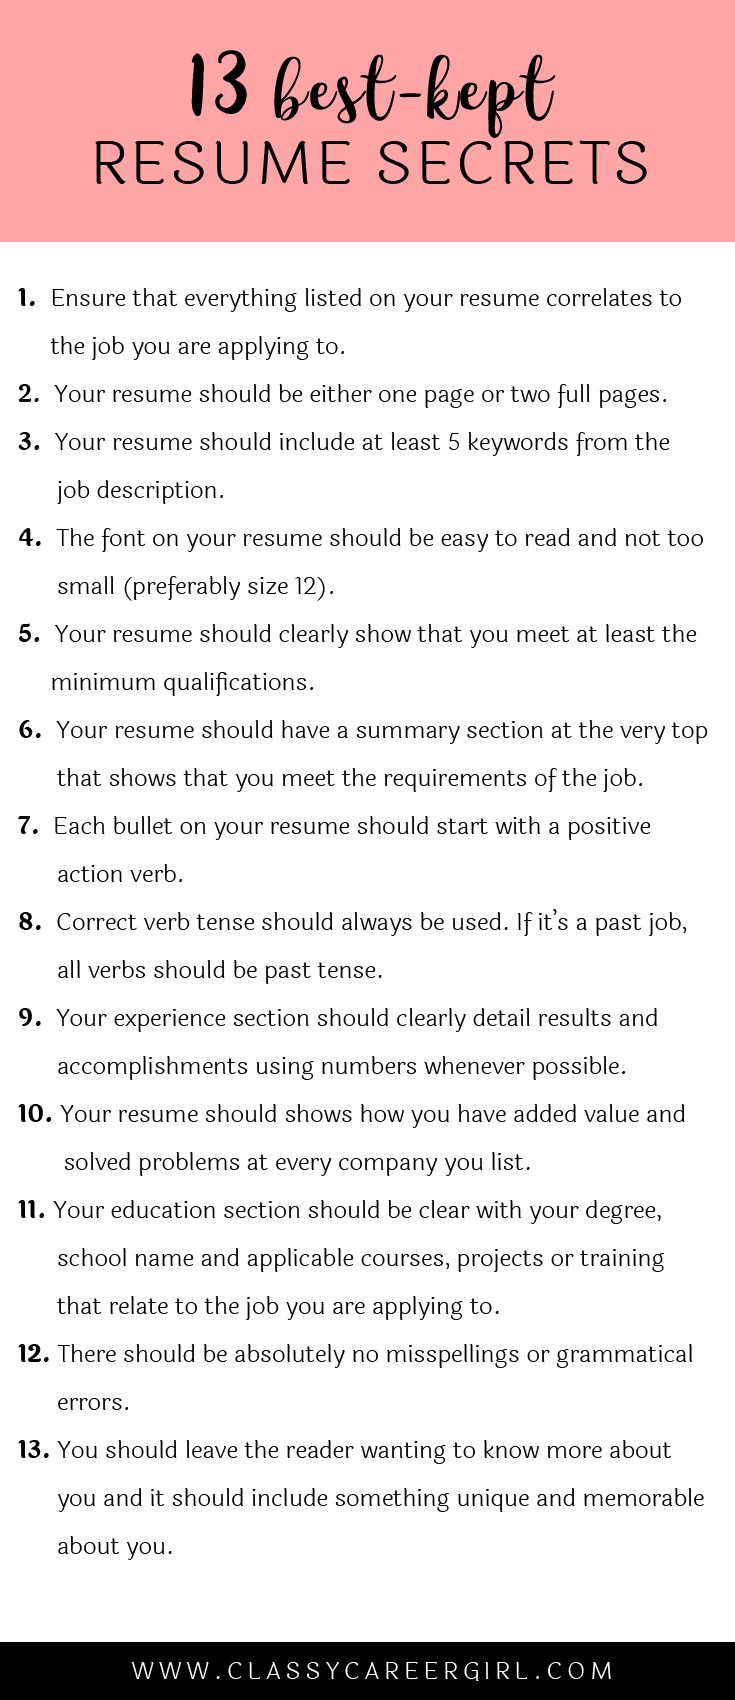 Opposenewapstandardsus  Nice  Ideas About Resume On Pinterest  Cv Format Resume Cv And  With Lovely Some Hiring Managers Will Toss Your Resume Out If You Dont Know These  With Comely Dental Resume Template Also Six Sigma Resume In Addition Dental Hygiene Resume Examples And Objective Summary For Resume As Well As Administrative Assistant Job Duties For Resume Additionally Career Counselor Resume From Pinterestcom With Opposenewapstandardsus  Lovely  Ideas About Resume On Pinterest  Cv Format Resume Cv And  With Comely Some Hiring Managers Will Toss Your Resume Out If You Dont Know These  And Nice Dental Resume Template Also Six Sigma Resume In Addition Dental Hygiene Resume Examples From Pinterestcom